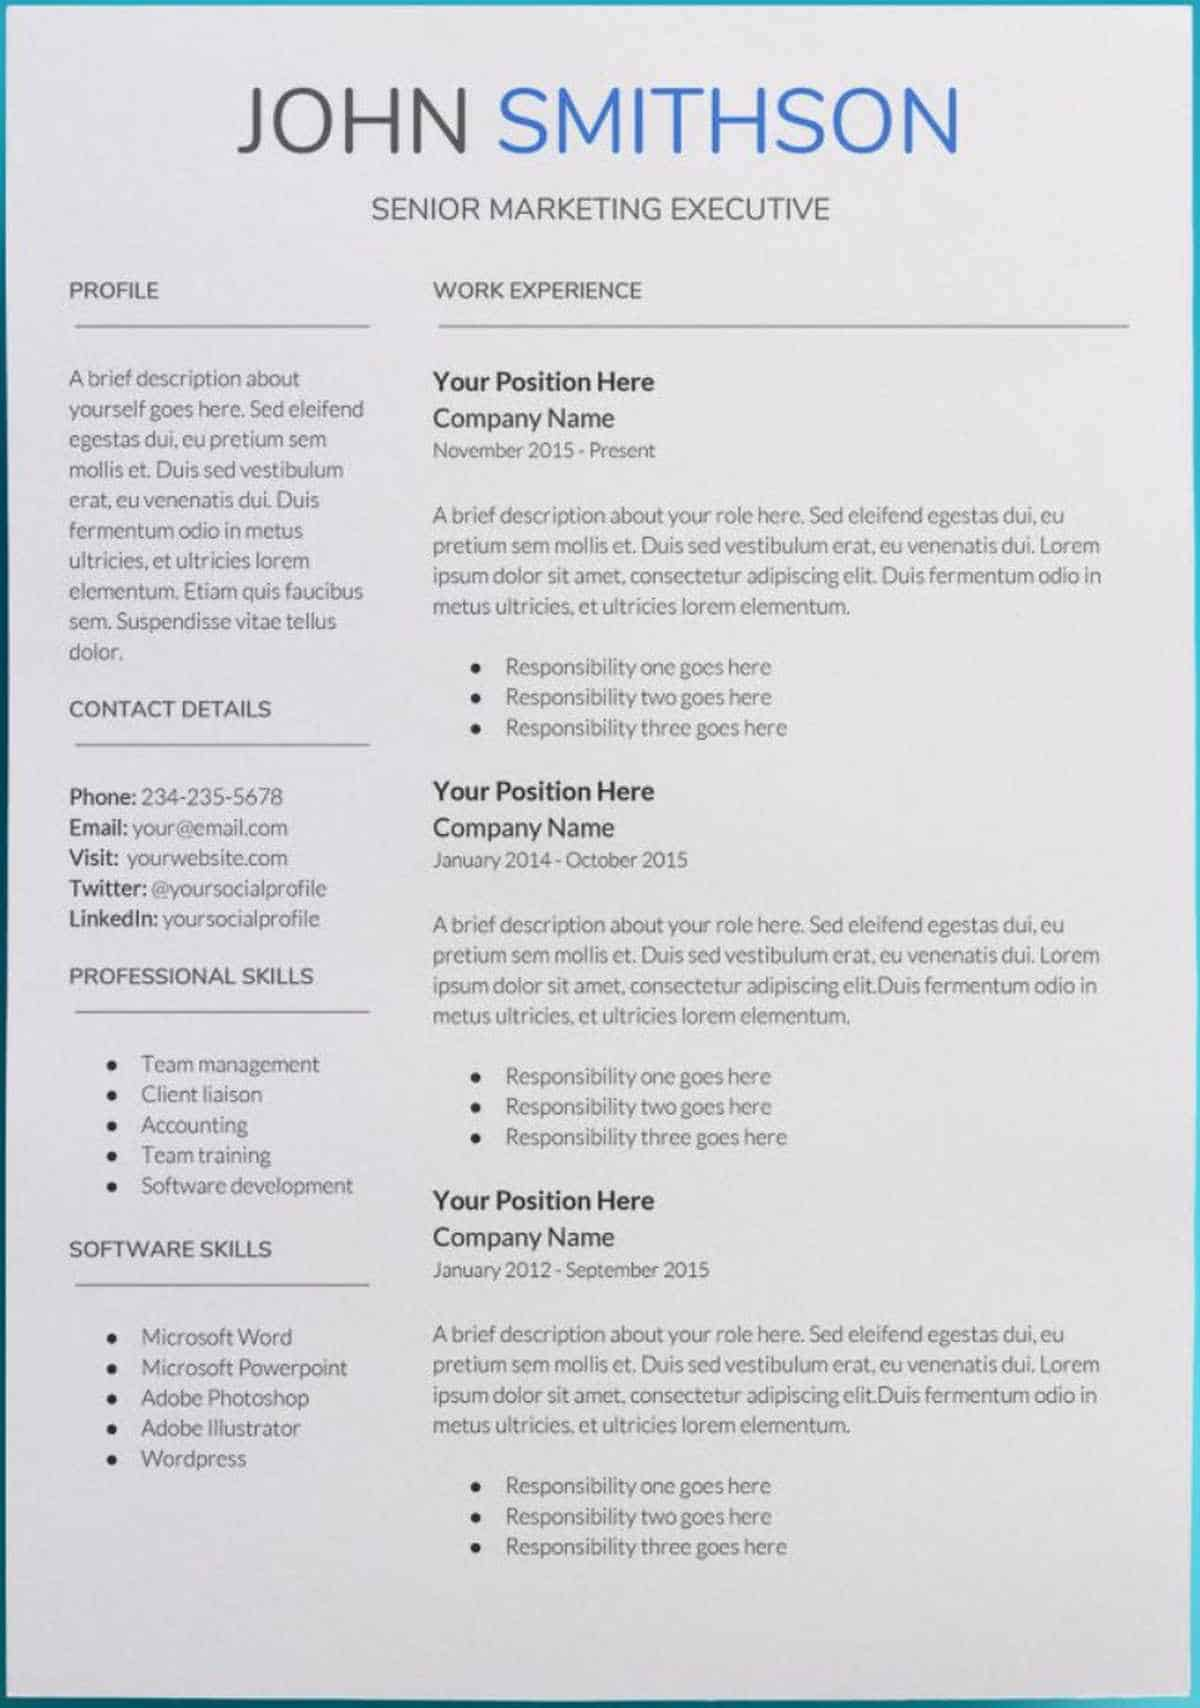 Saturn Google Docs Resume Template | Google Docs Resume Template | Google Docs Resume Templates To Ace Your Next Interview